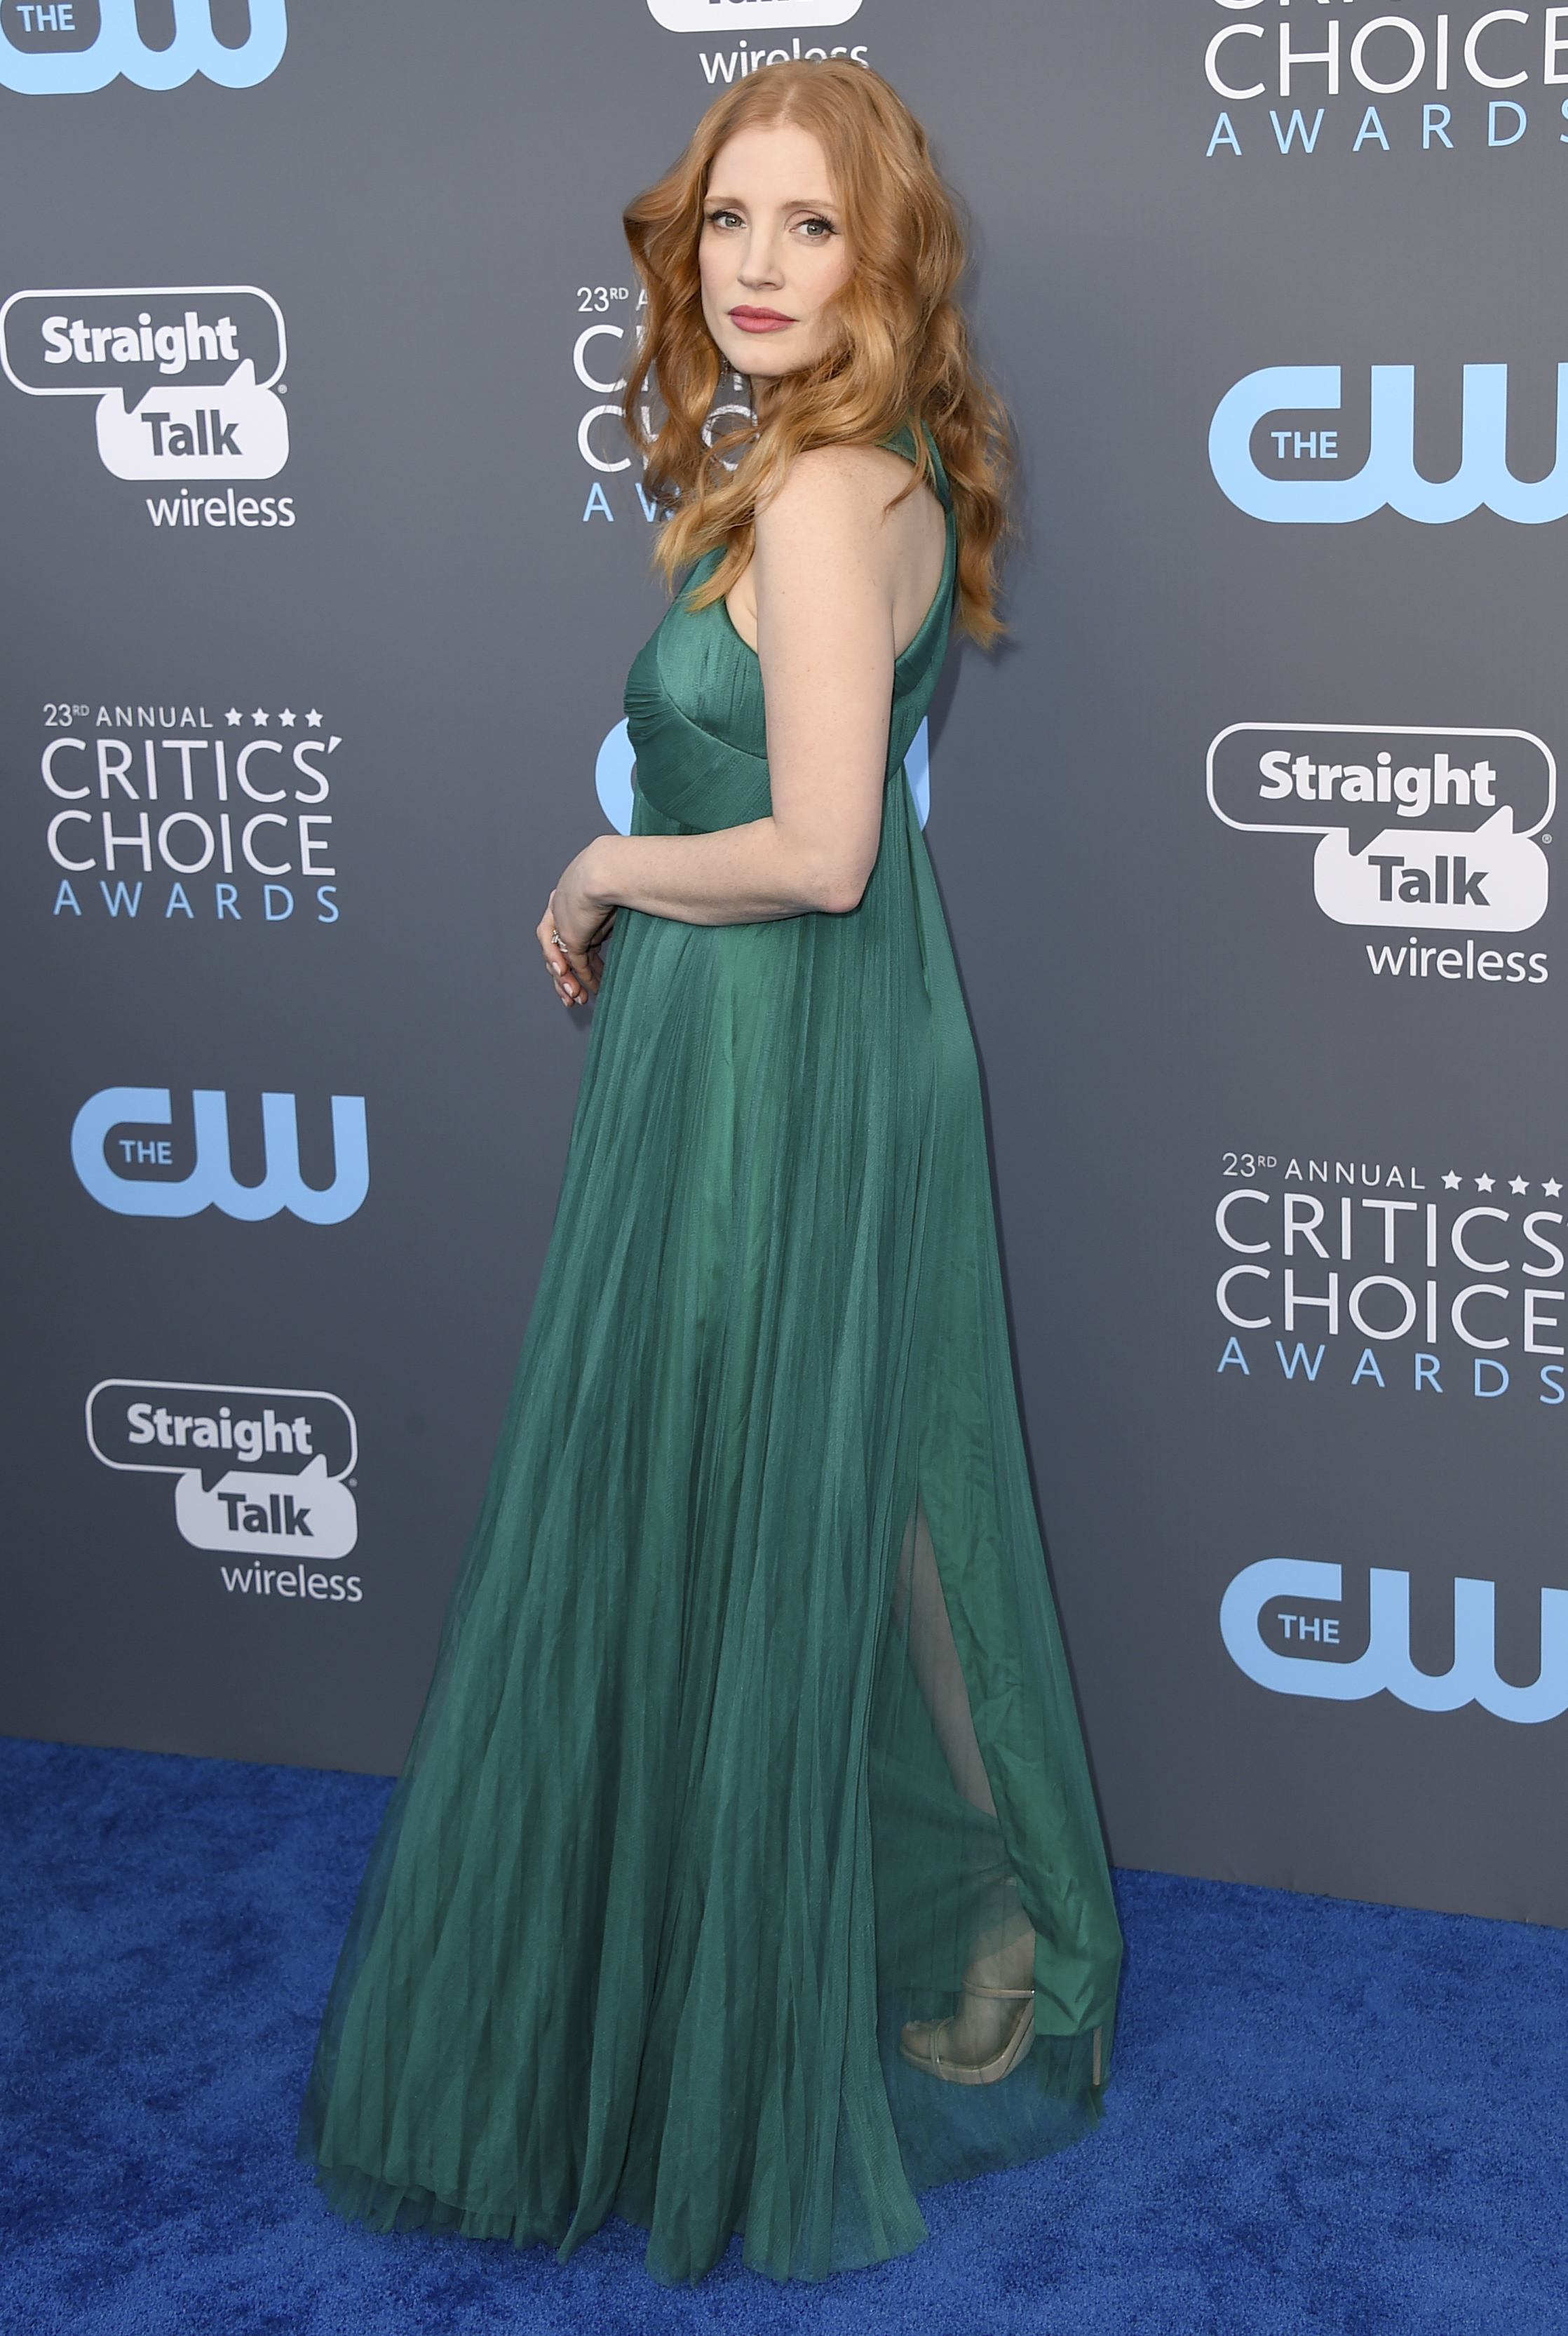 <div class='meta'><div class='origin-logo' data-origin='AP'></div><span class='caption-text' data-credit='Jordan Strauss/Invision/AP'>Jessica Chastain arrives at the 23rd annual Critics' Choice Awards at the Barker Hangar on Thursday, Jan. 11, 2018, in Santa Monica, Calif.</span></div>